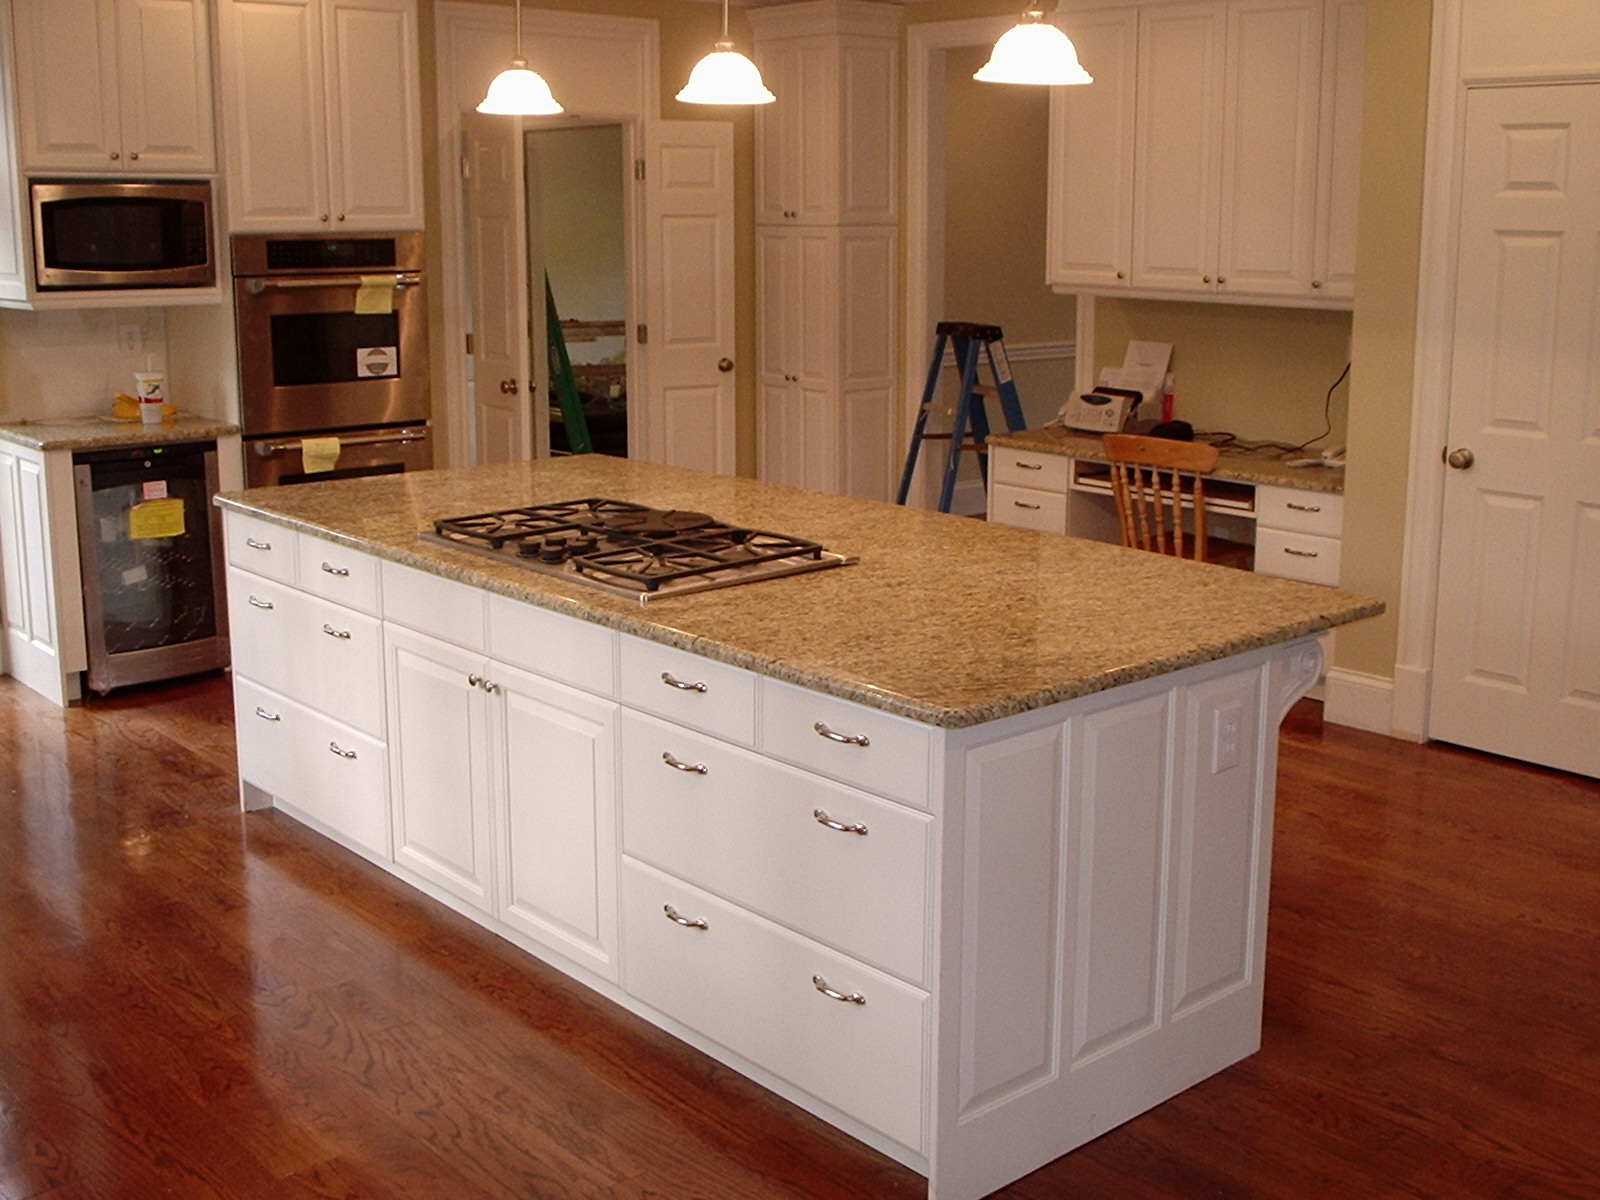 Kitchen cabinet plans dream house experience Kitchen cabinets design your own